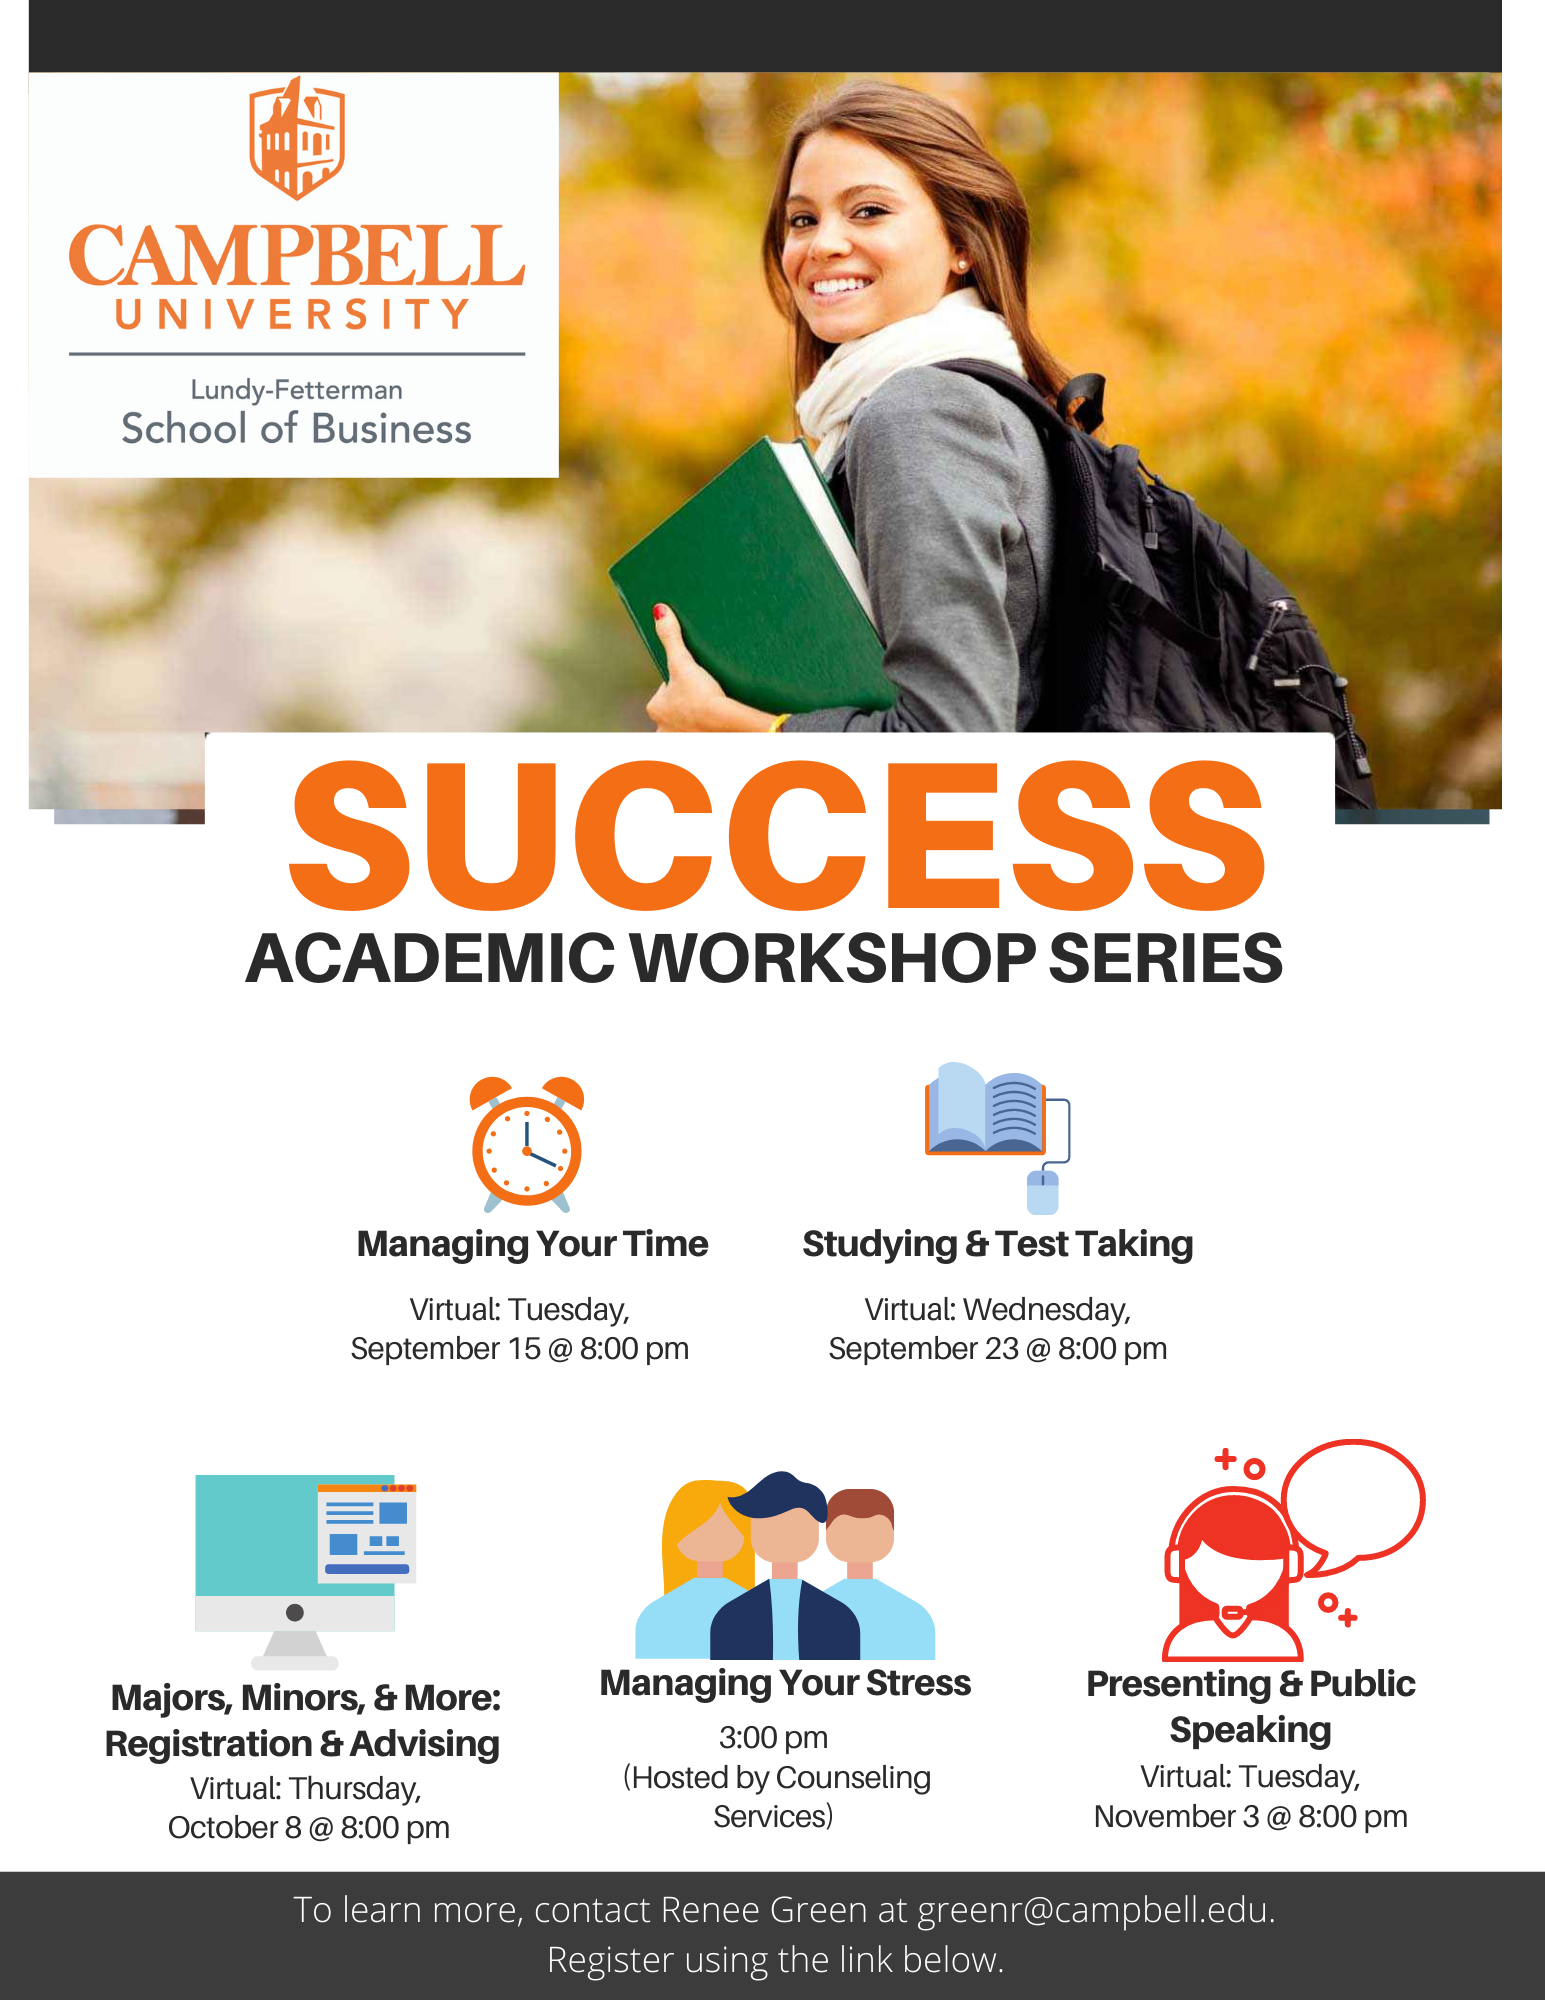 image of success series